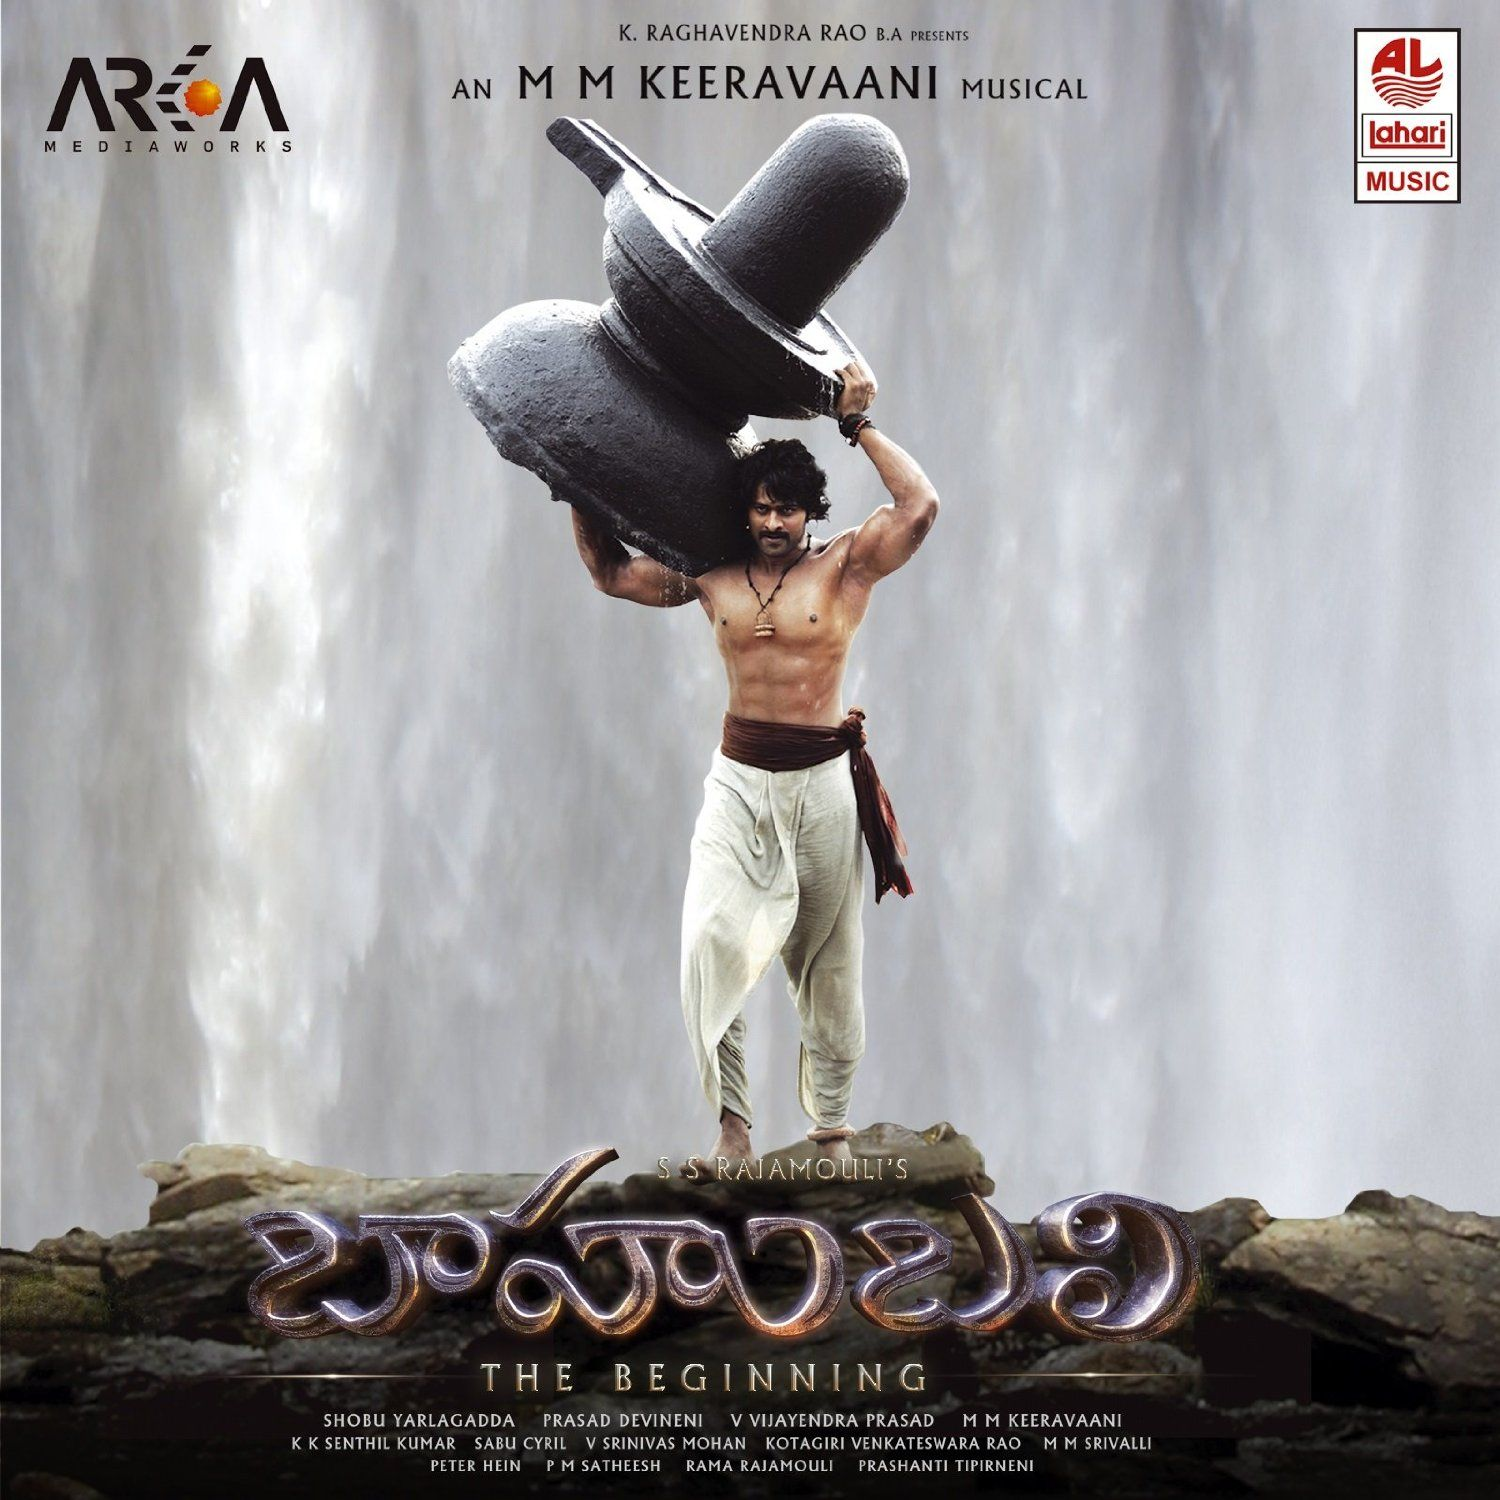 Telugu Songs Lyrics And Translation Dhivara Dheevara Lyrics And Translation Baahubali 2015 Mp3 Song Download Mp3 Song New Song Download